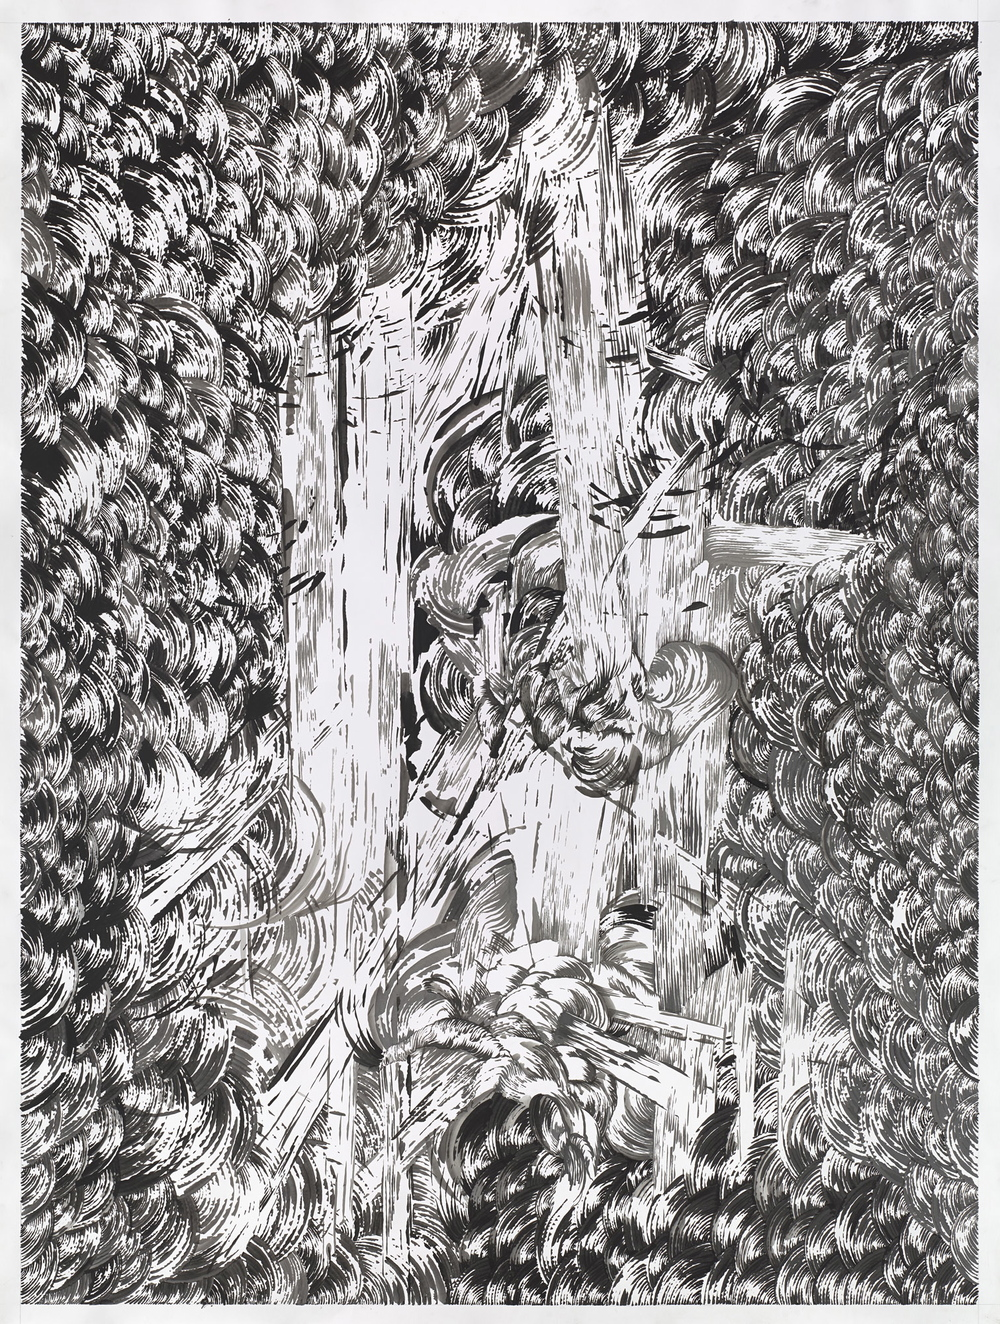 Bettina Krieg | P 164-2 Untitled | Ink on Paper | 200 x 150 cm | 2014